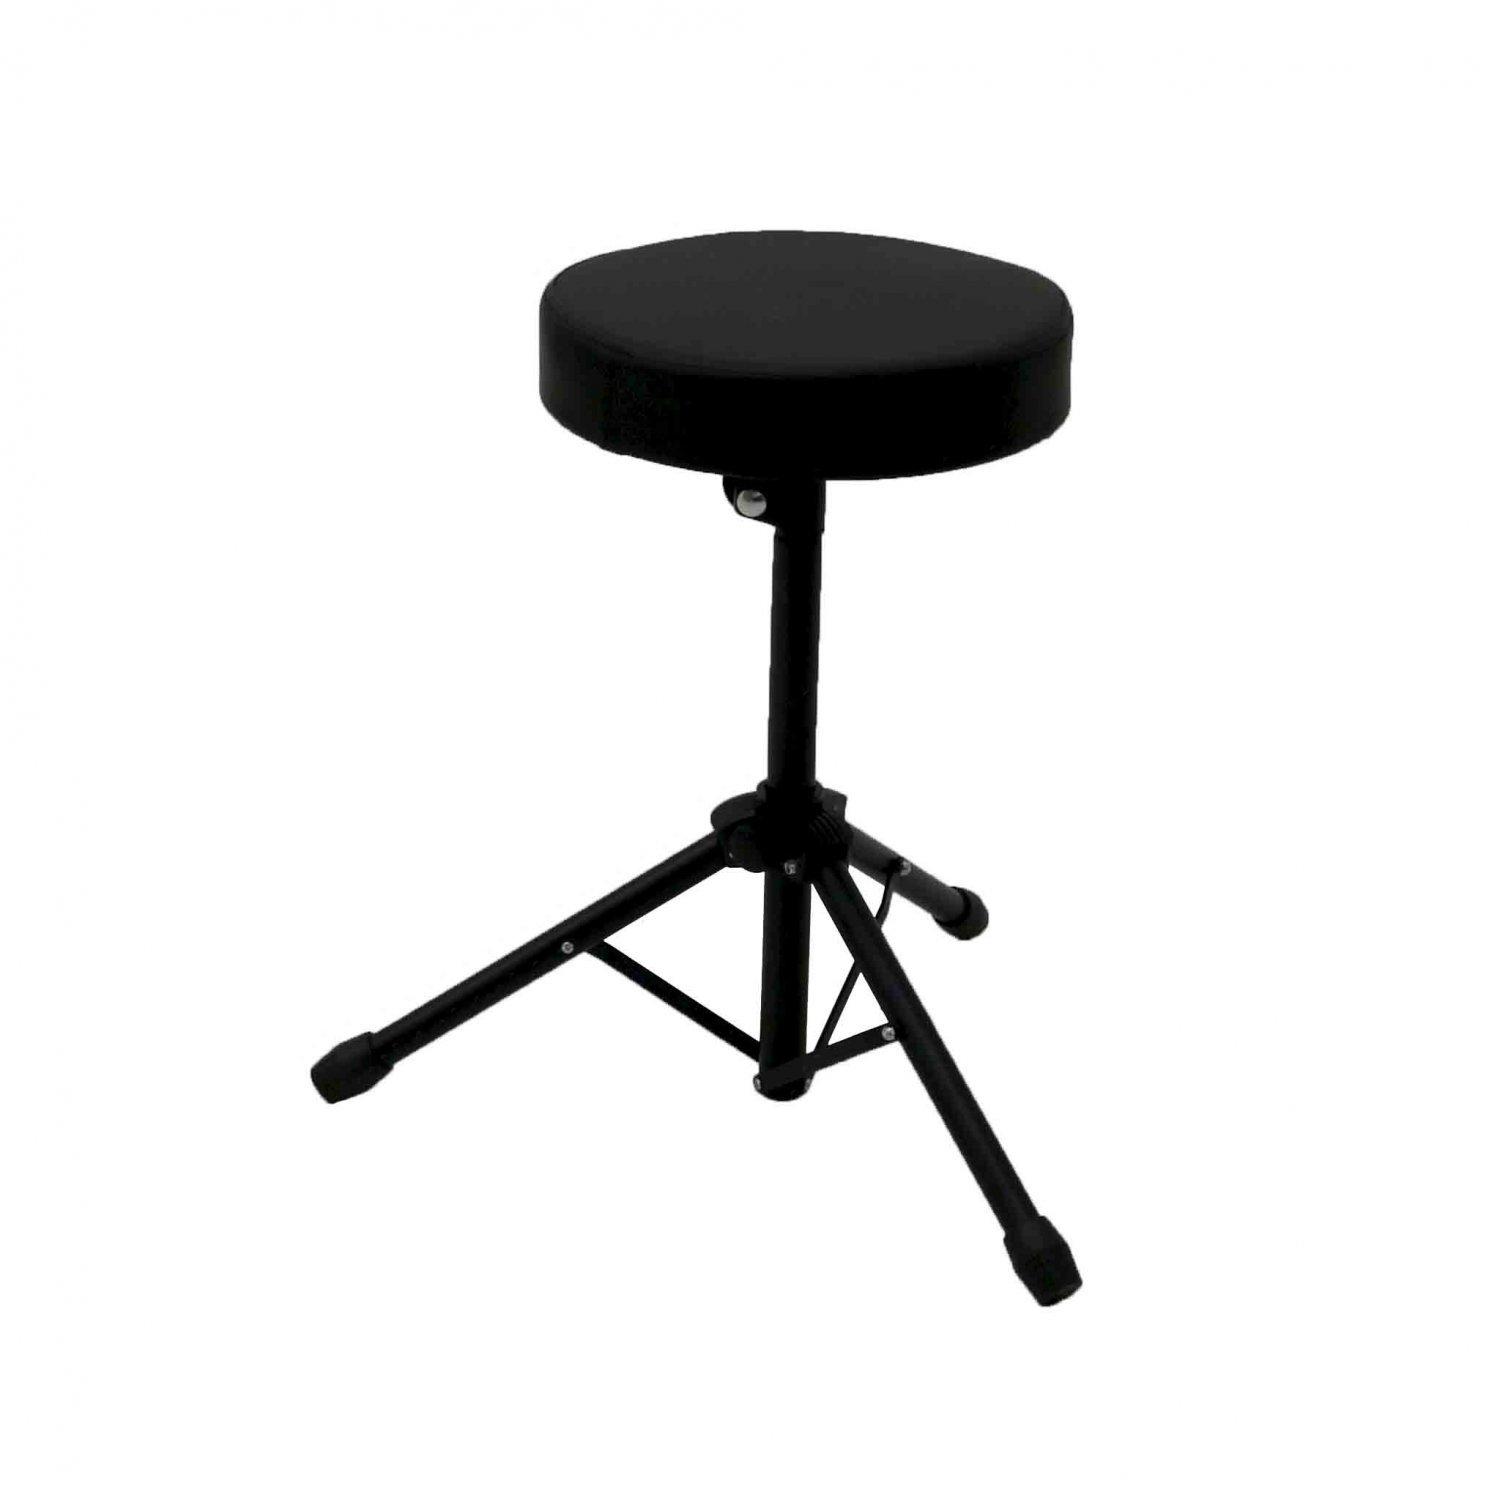 Foldable Drum Stool Throne Chair Seat Music Piano Keyboard